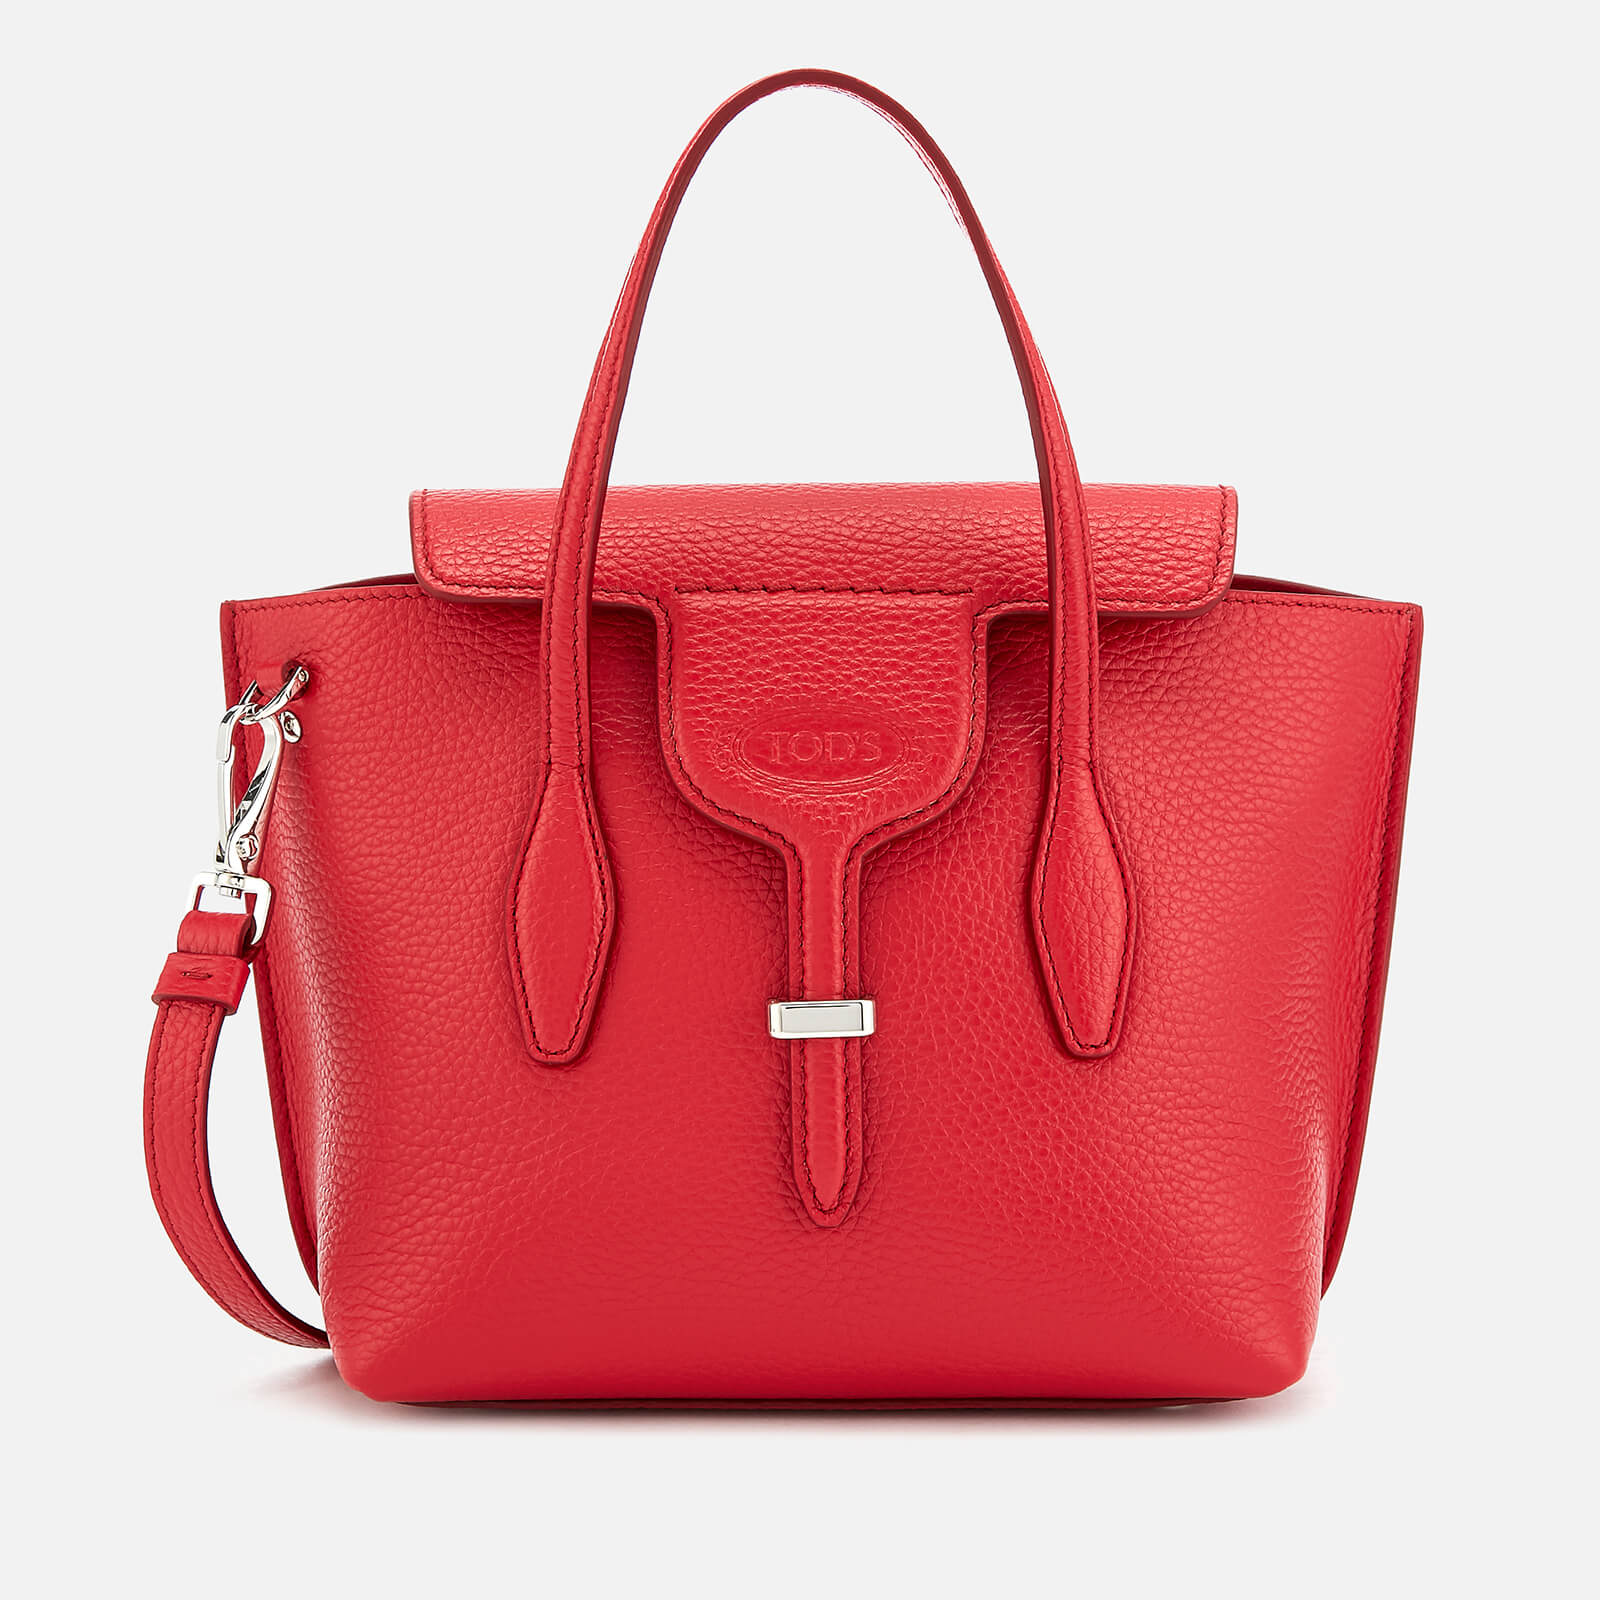 Tod s Women s Mini Tote Bag - Red - Free UK Delivery over £50 4408c2cec4